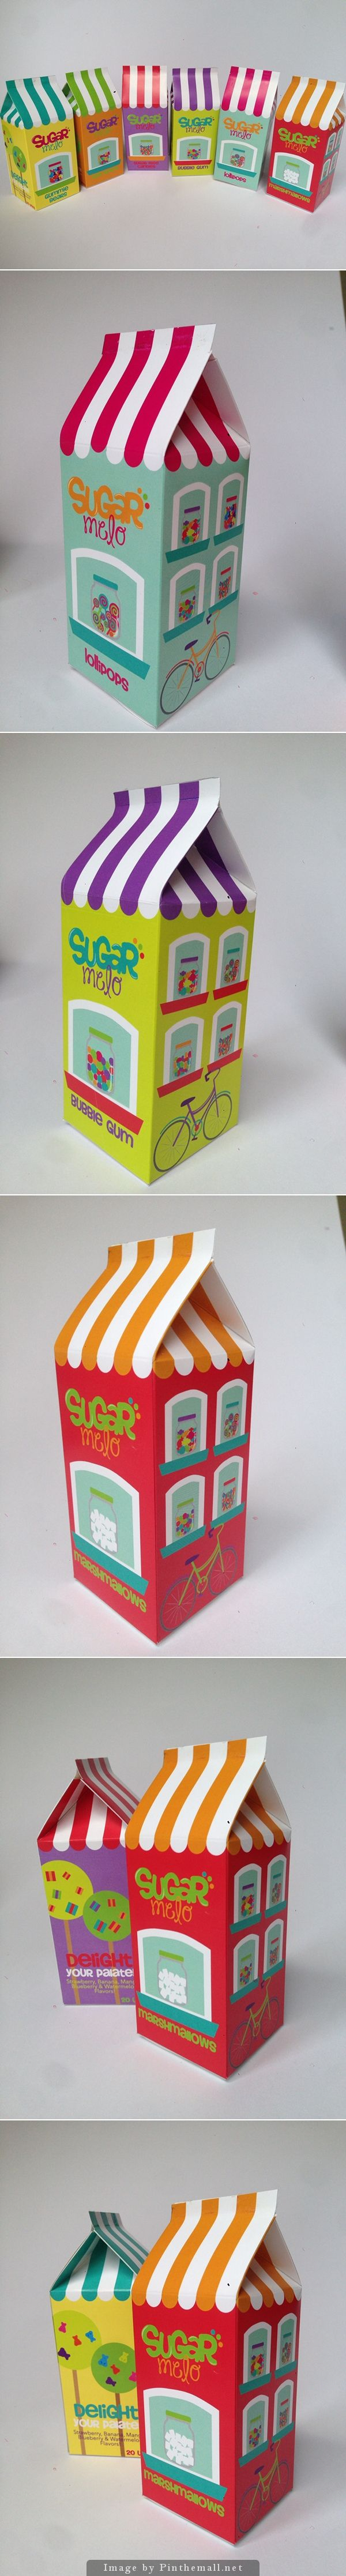 #packaging Sugar Melo Package by Nicolle Lowenthal Castillo | I love the different font styles for the logo. It's very colorful and fun.